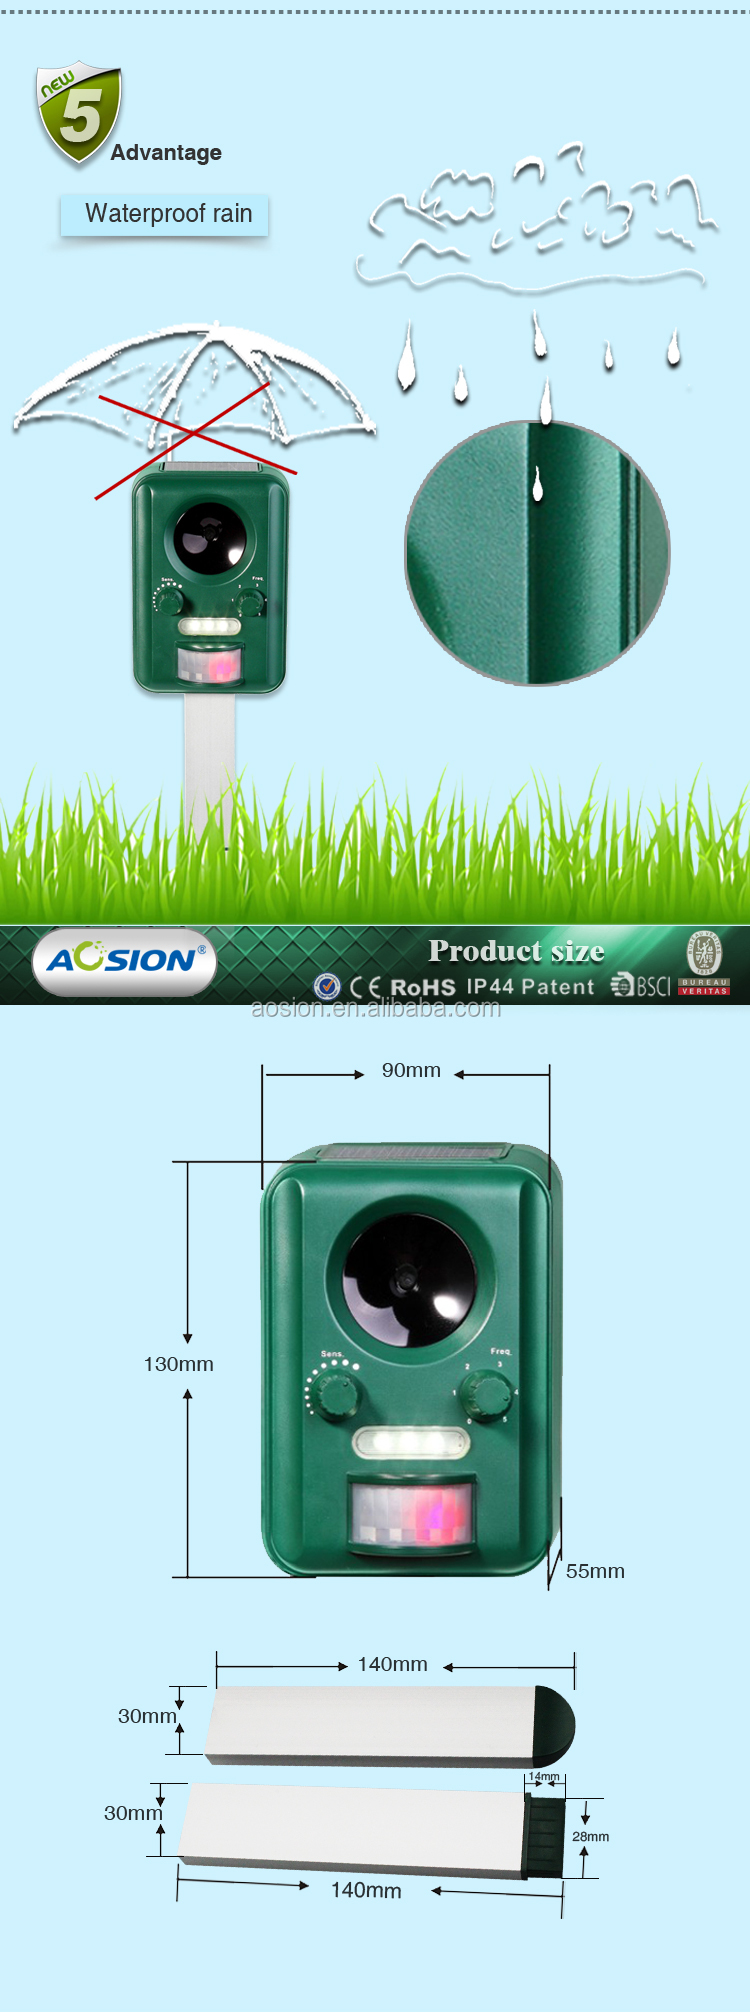 Aosion patent designed solar ultrasonic animal bird repeller pest control product for deer dog cat racoon bird